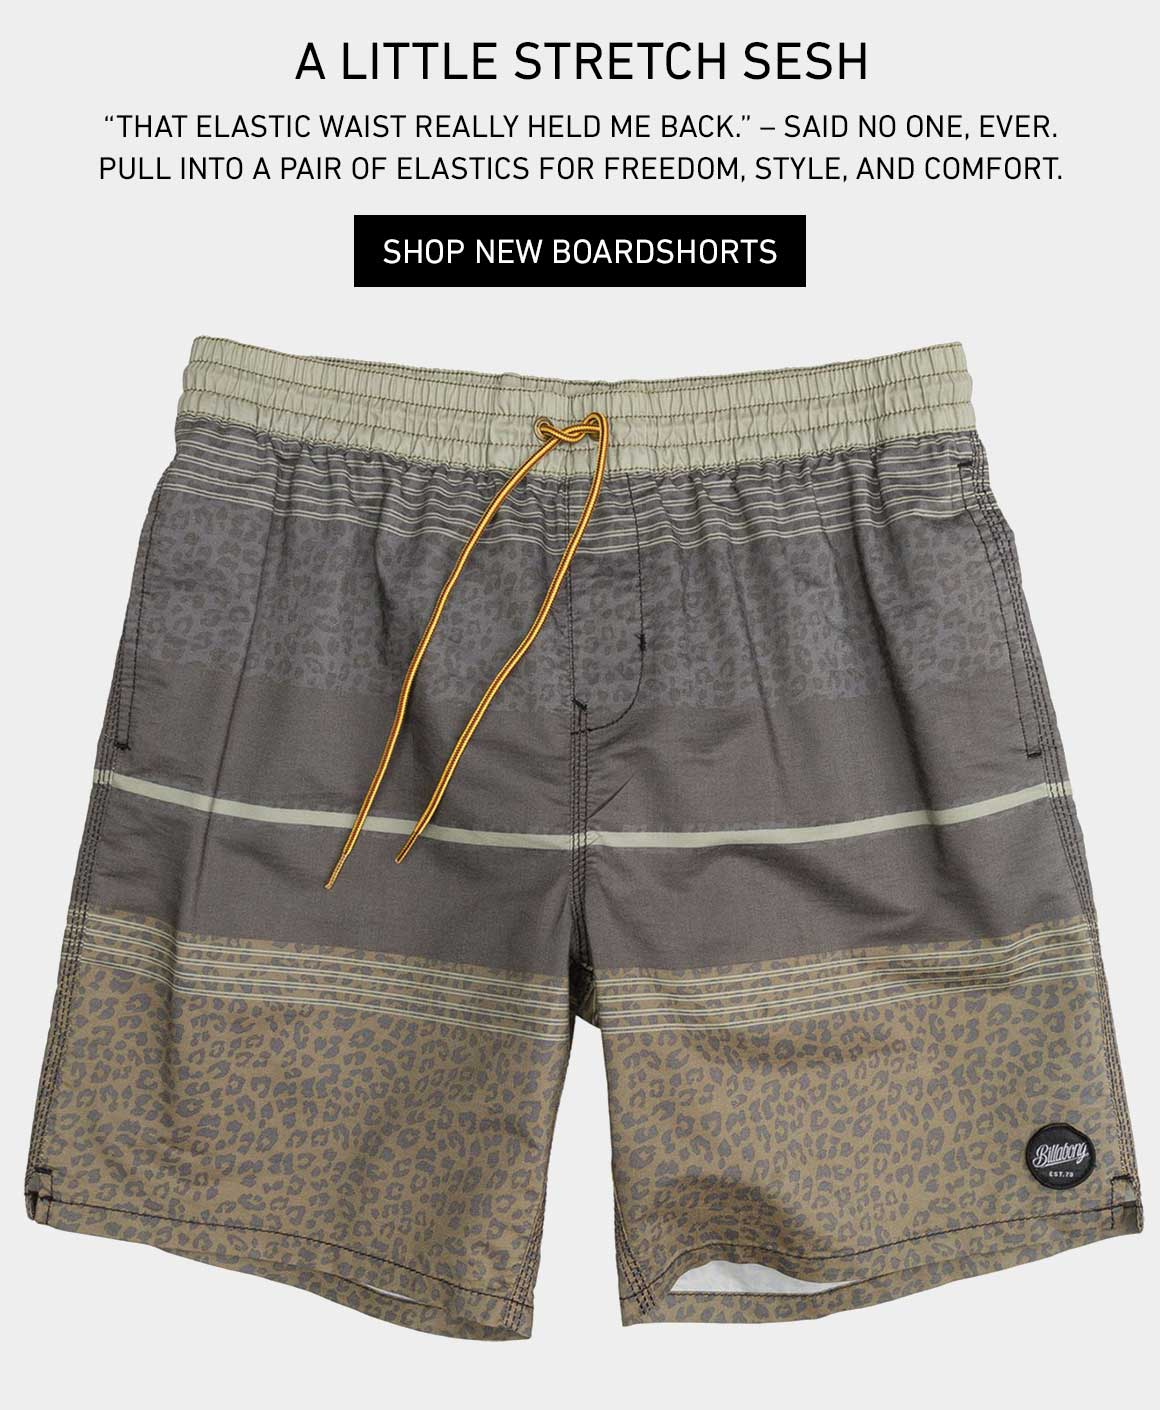 Stretch Your Sesh: Shop New Boarshorts